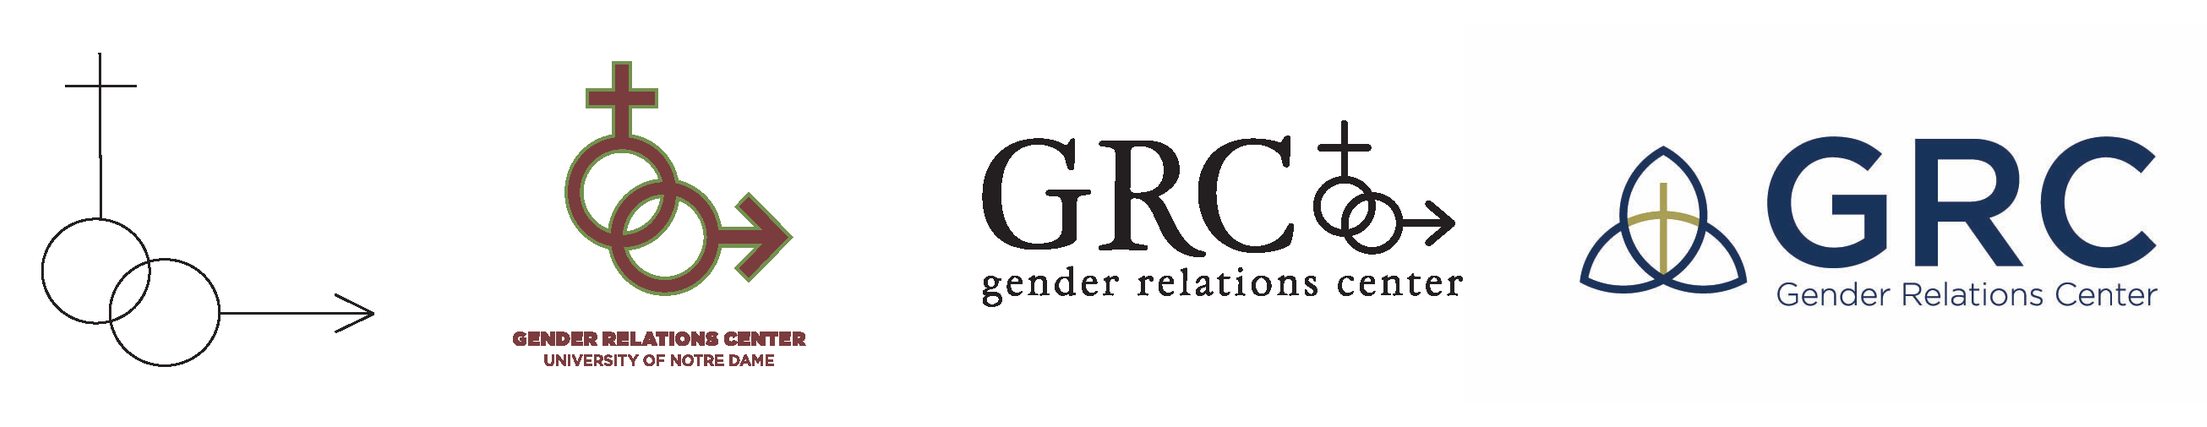 Image of the old and new GRC logos